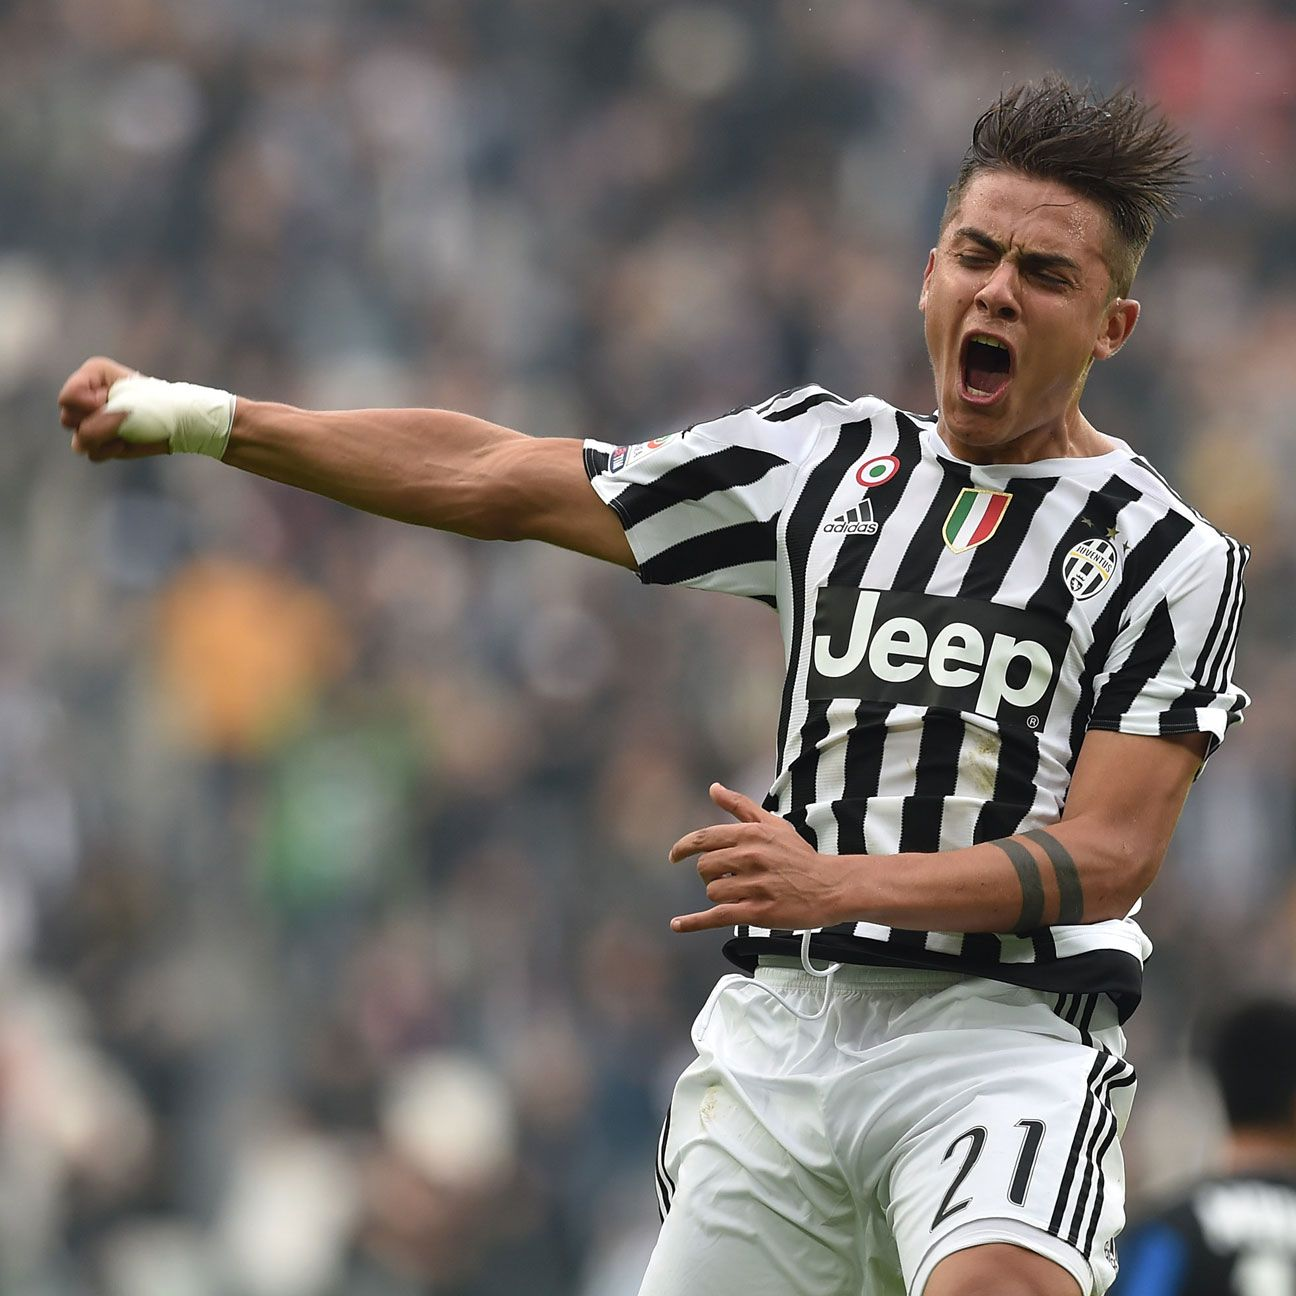 With his strike against Atalanta on Sunday, Paulo Dybala now has four goals this season in Serie A.